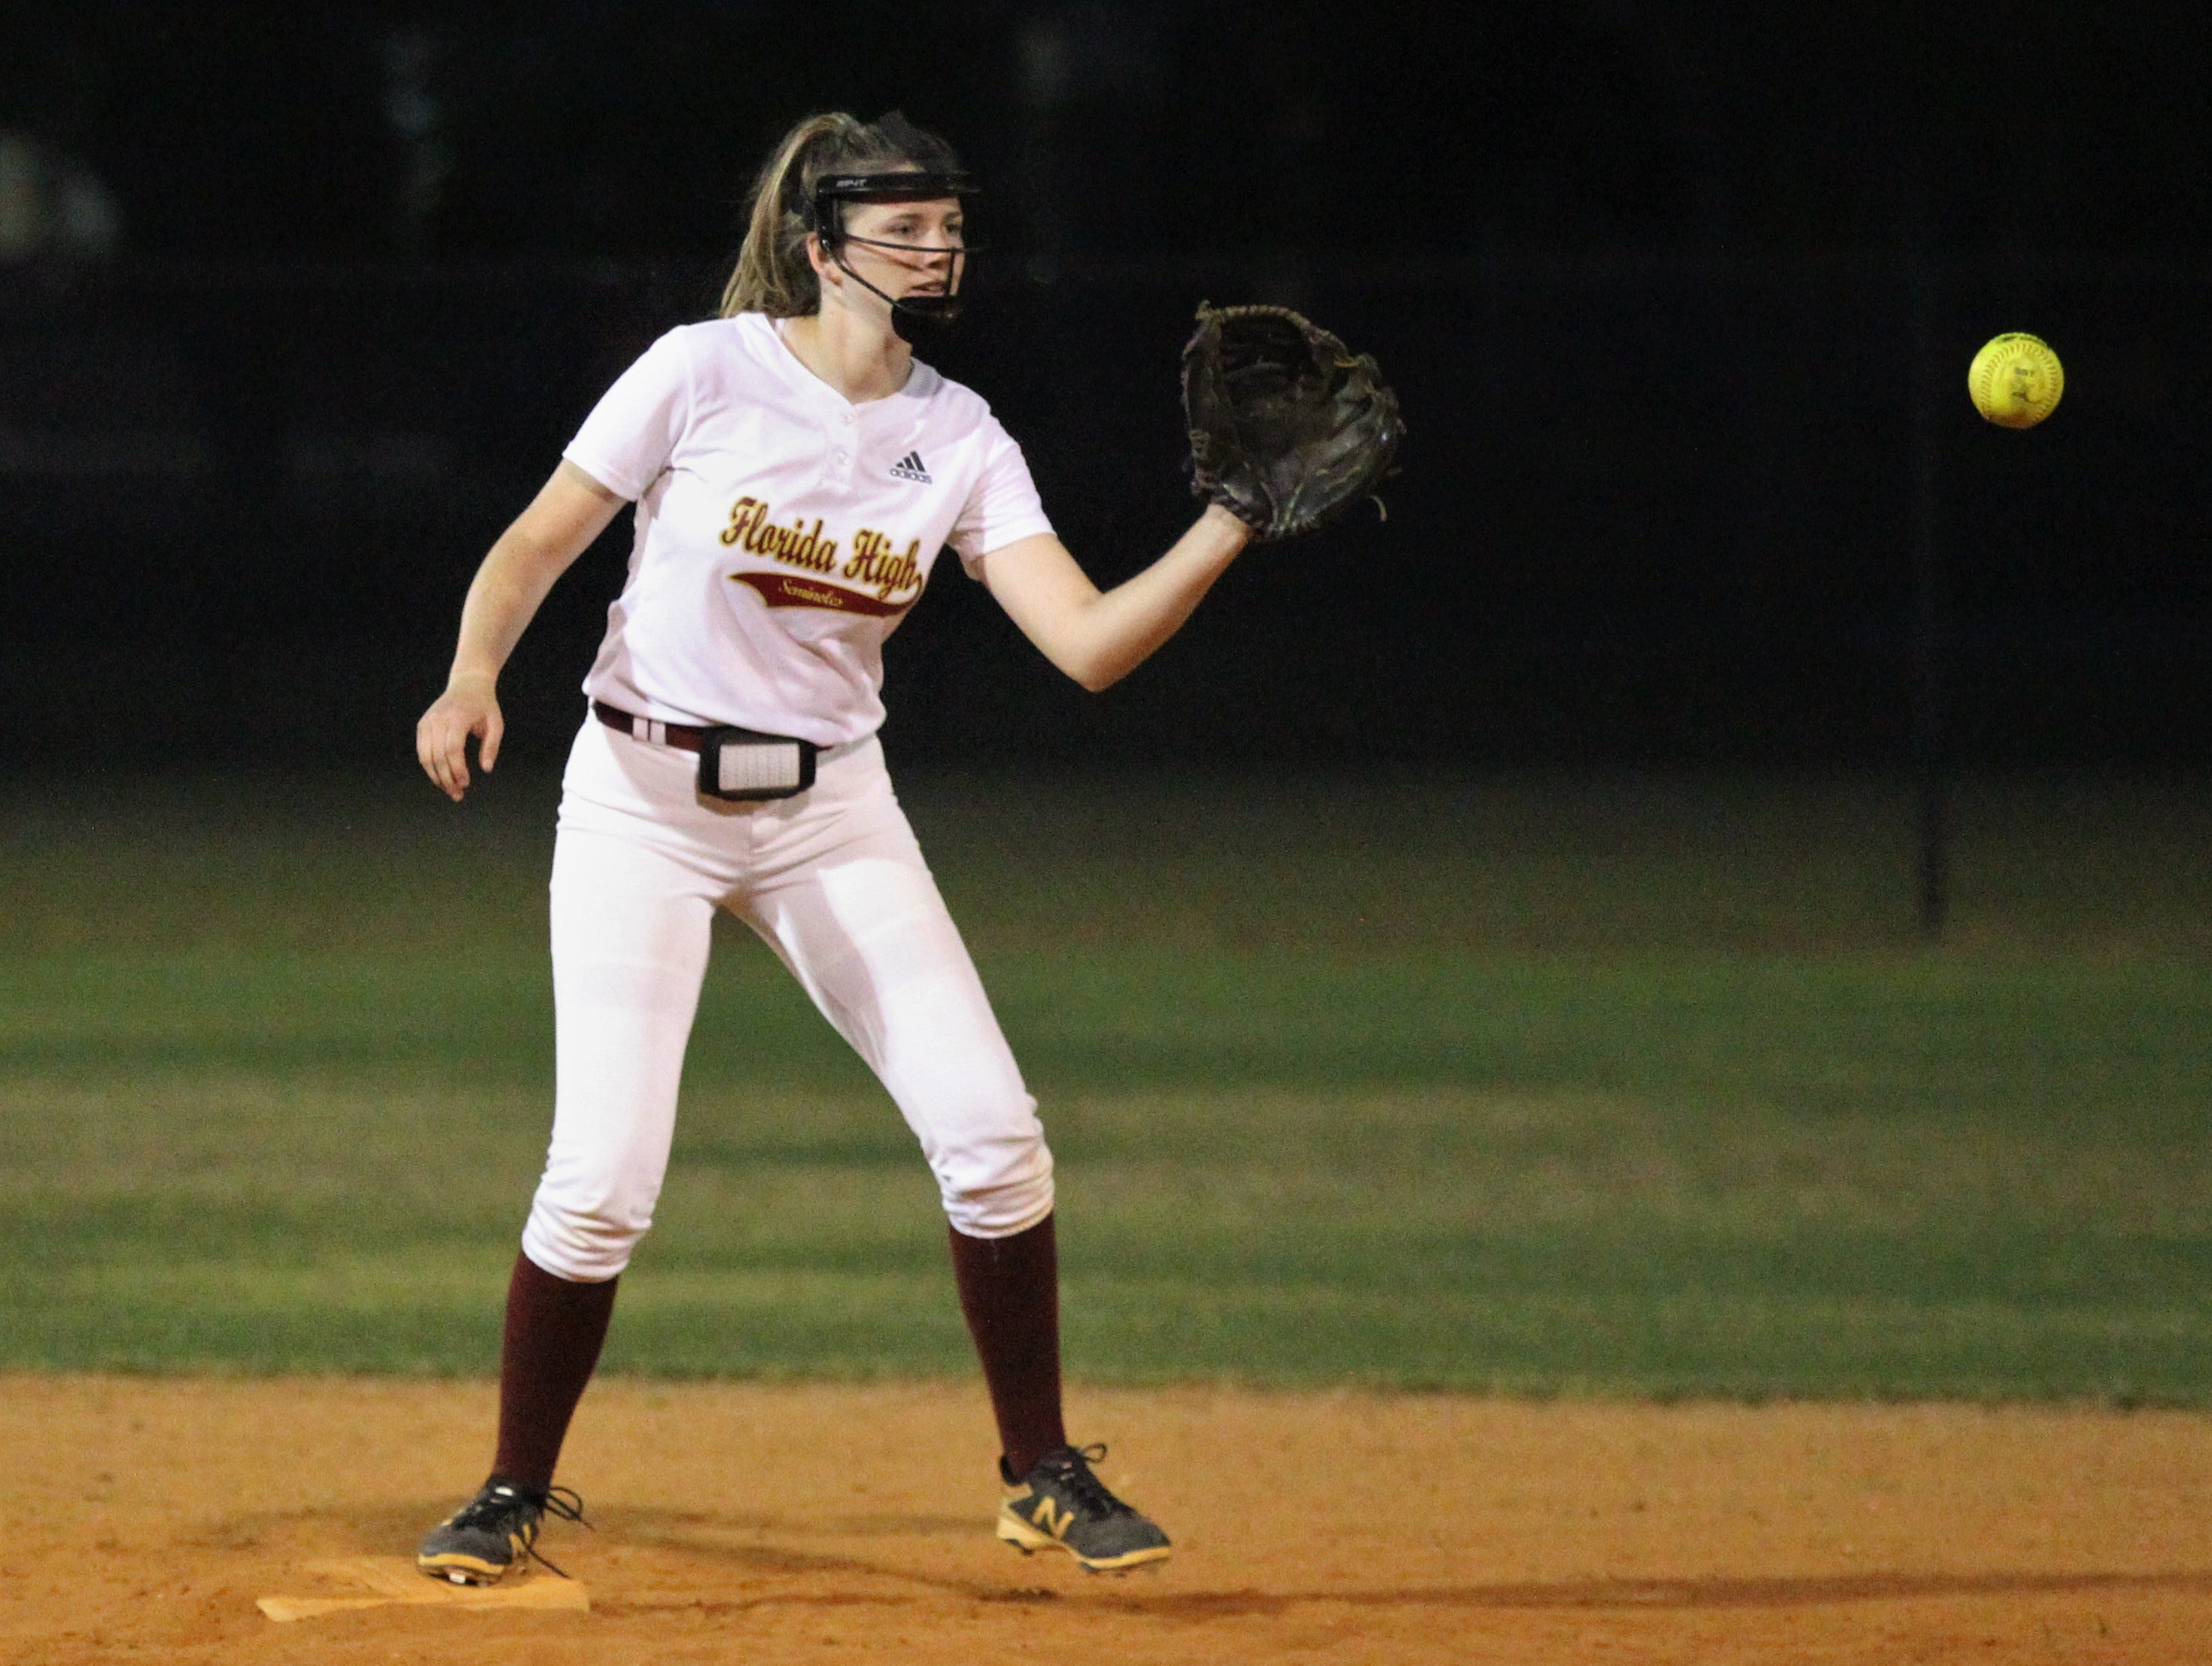 Florida High shortstop Addisan Langston waits on a throw for a force out as Lincoln's softball team beat Florida High 7-3 on Thursday, April 4, 2019.